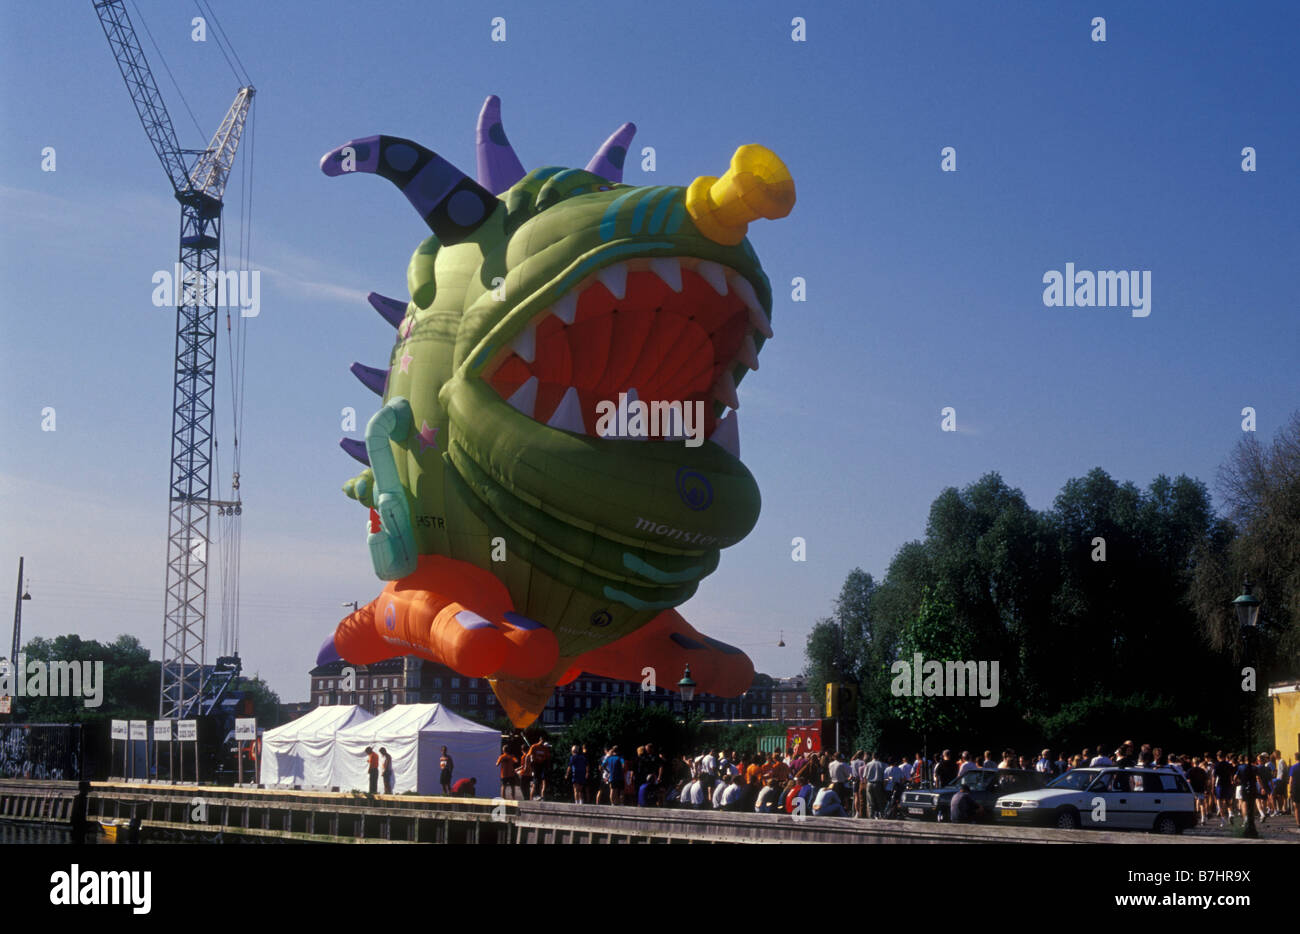 A large creature balloon at the start of the Copenhagen marathon - Stock Image